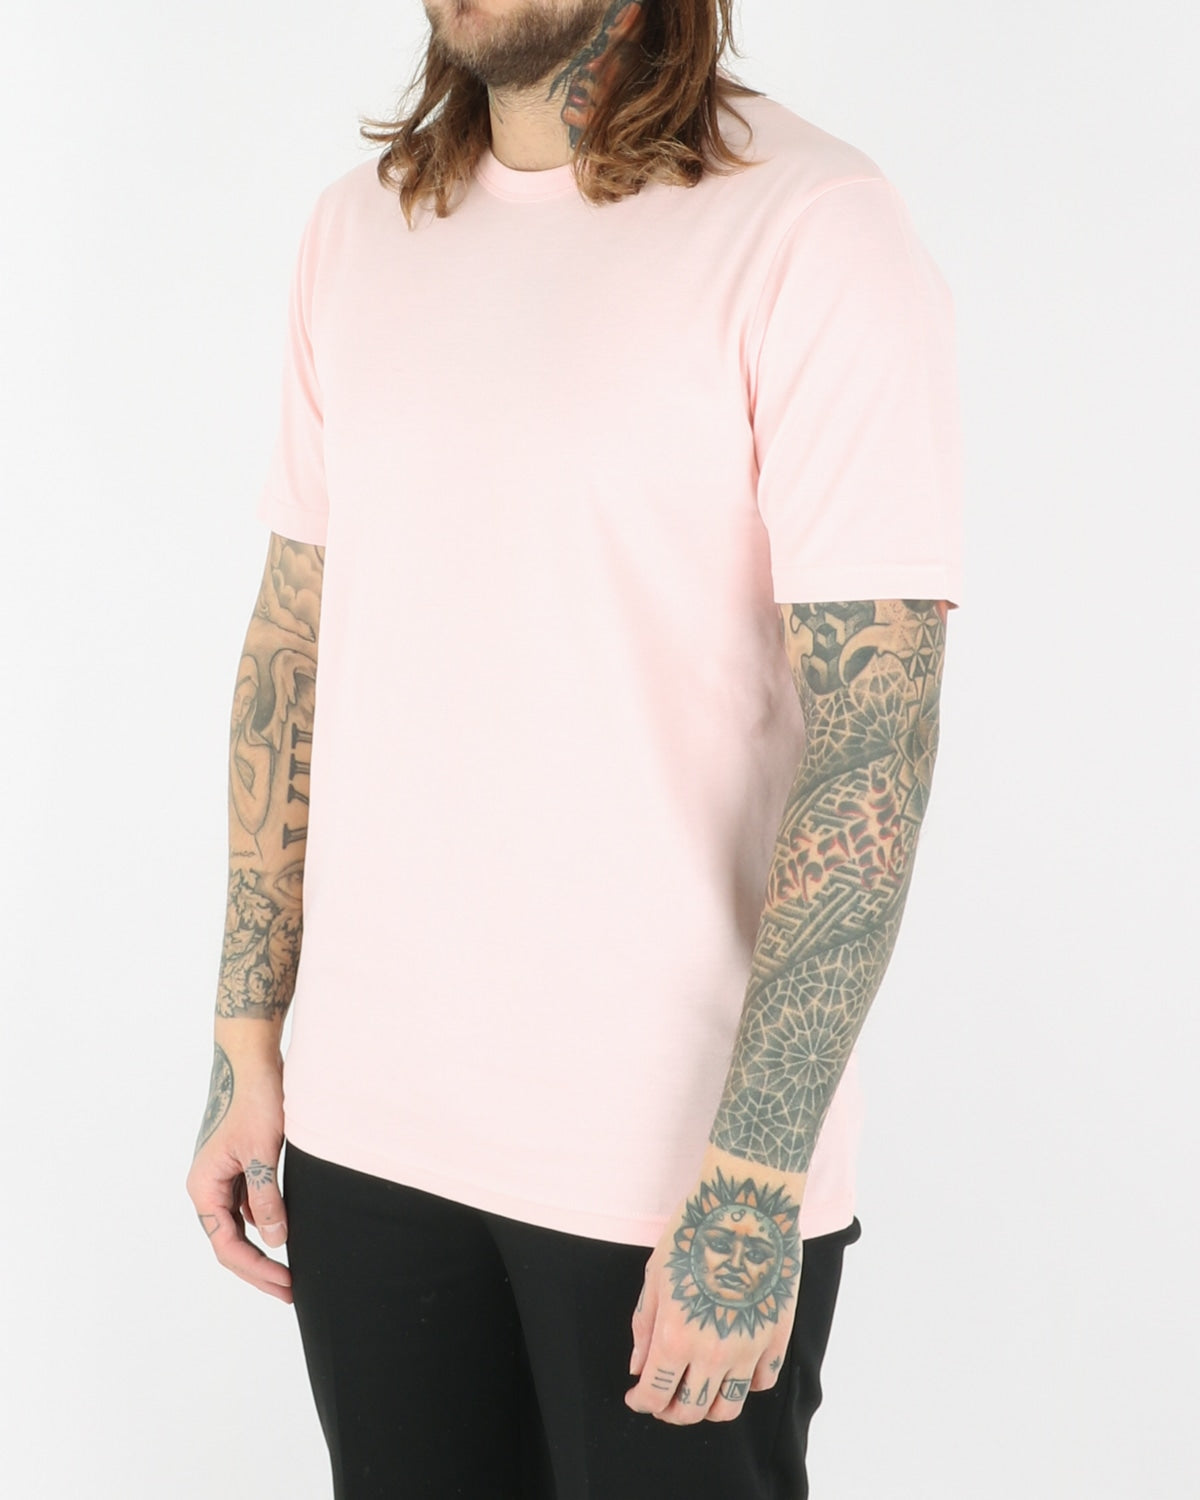 wood wood_ale t-shirt_light pink_view_2_3